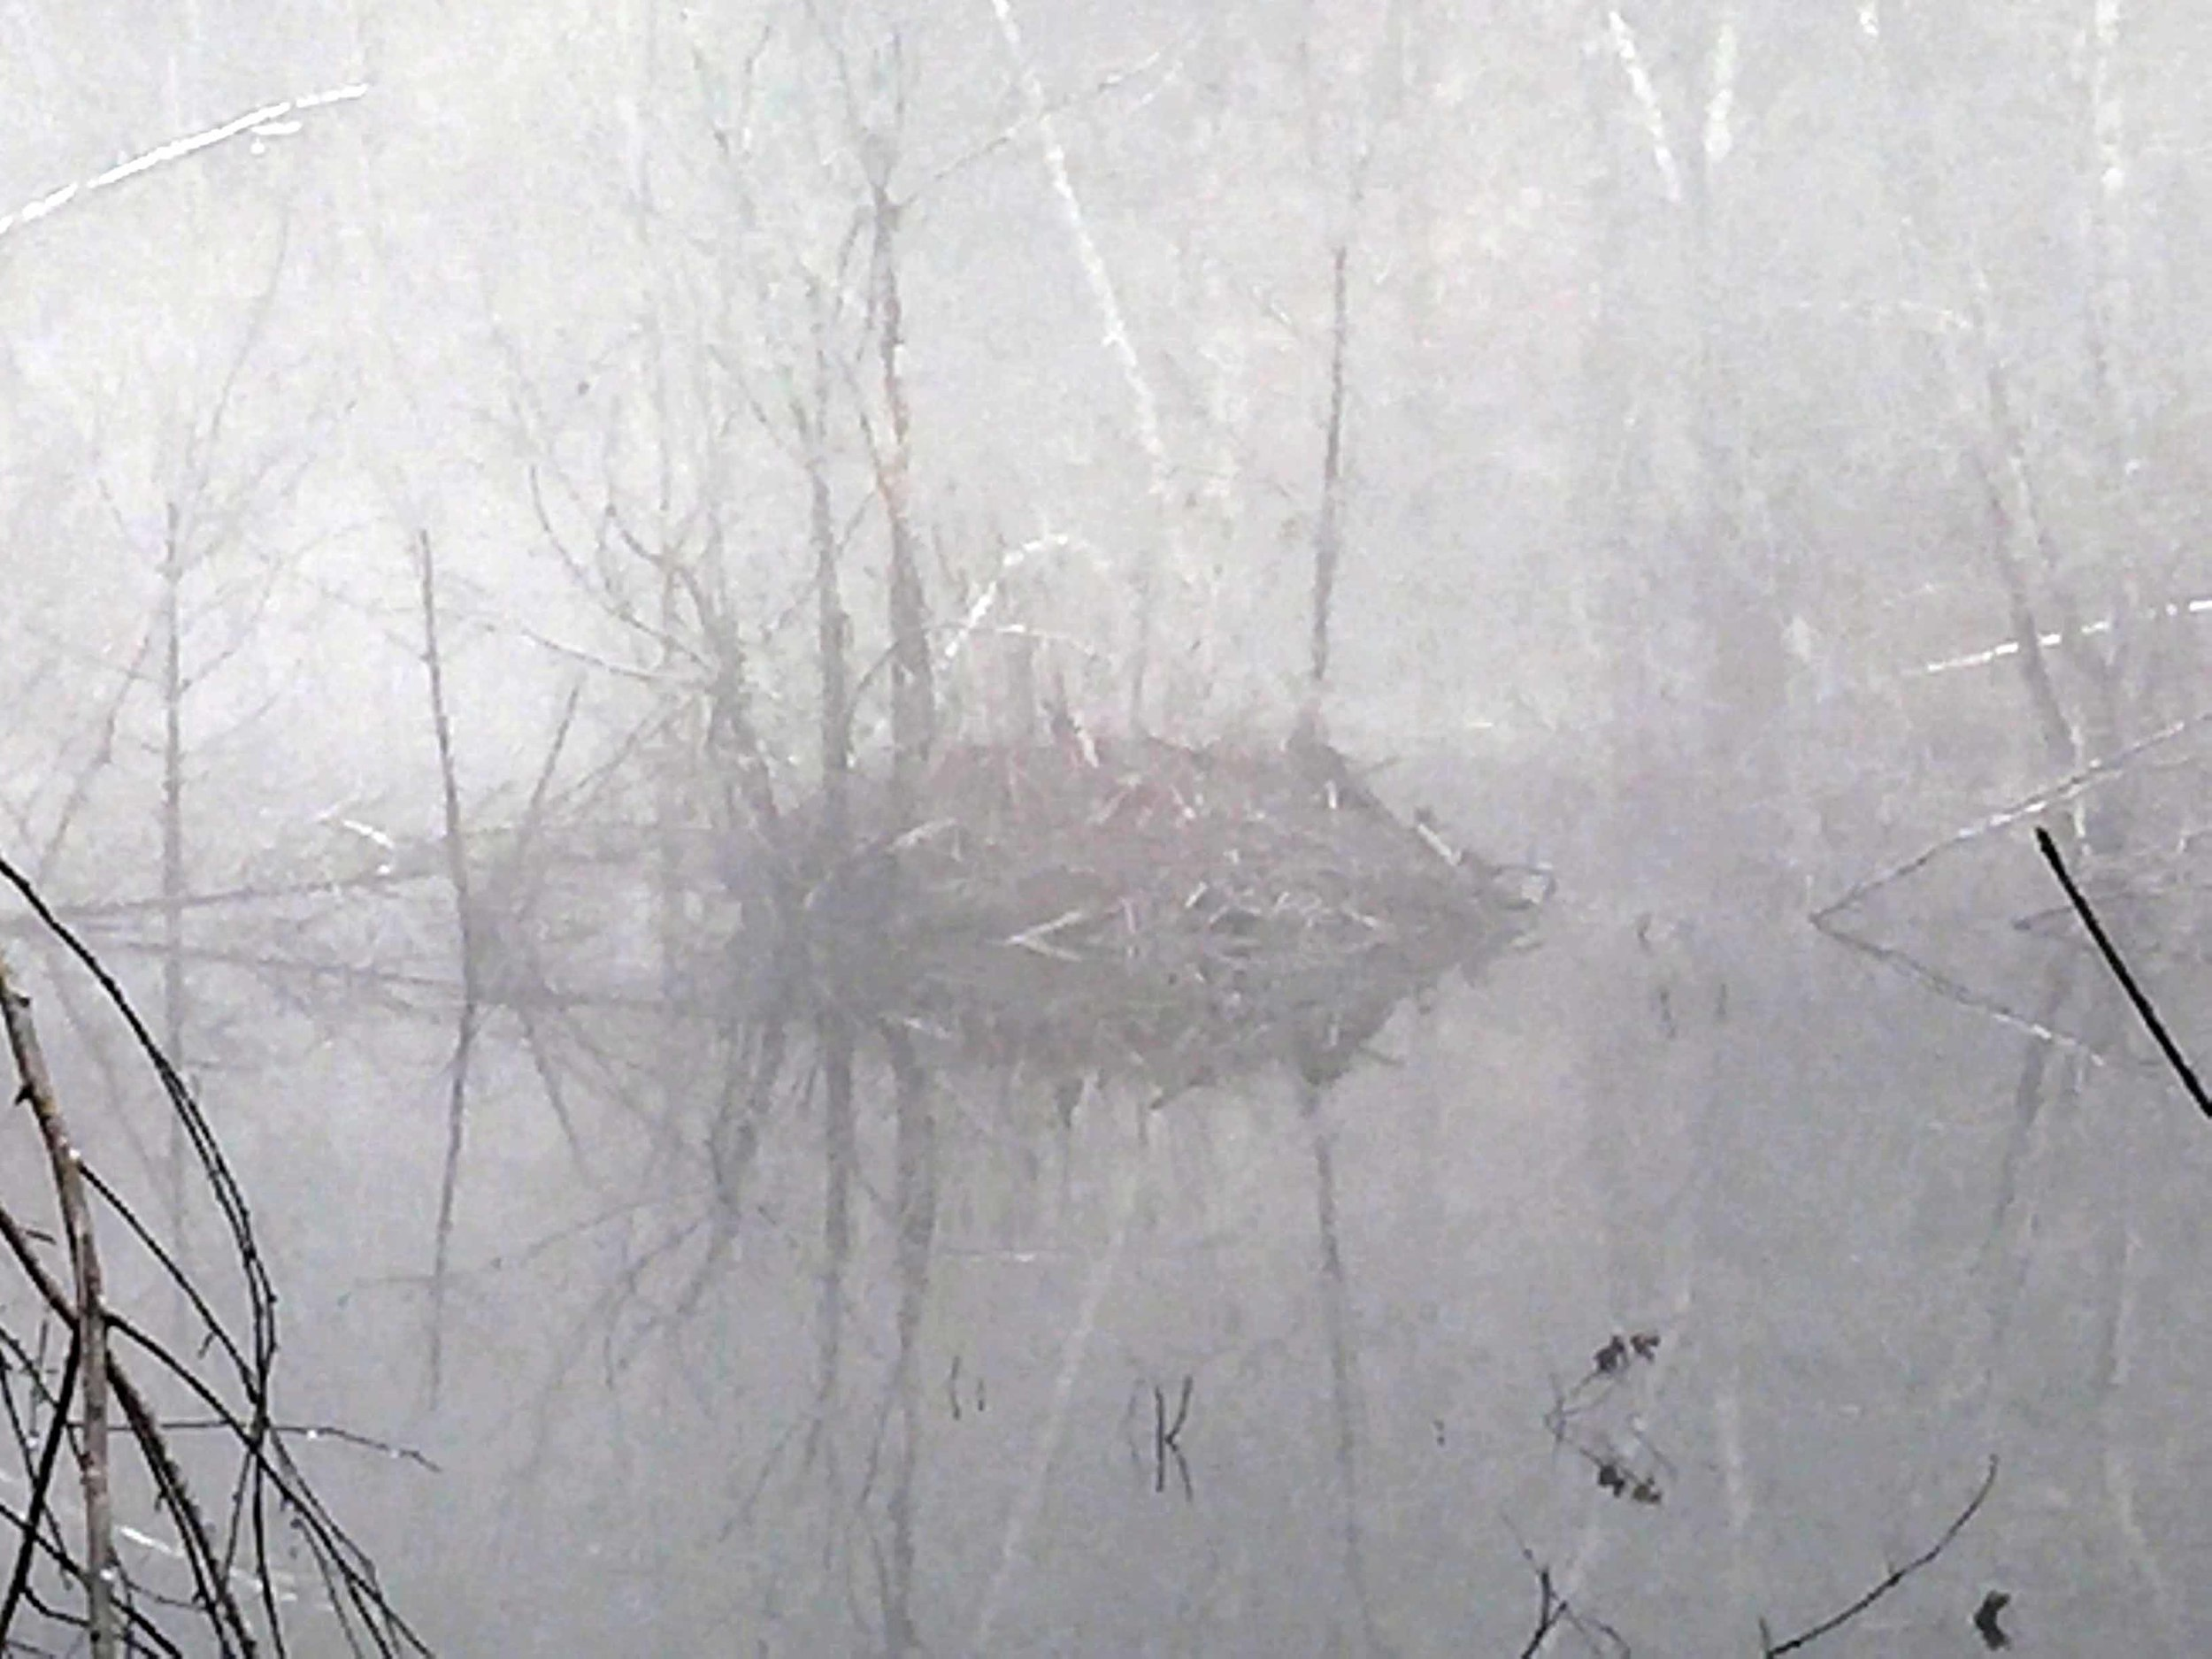 Closer view of the beaver lodge